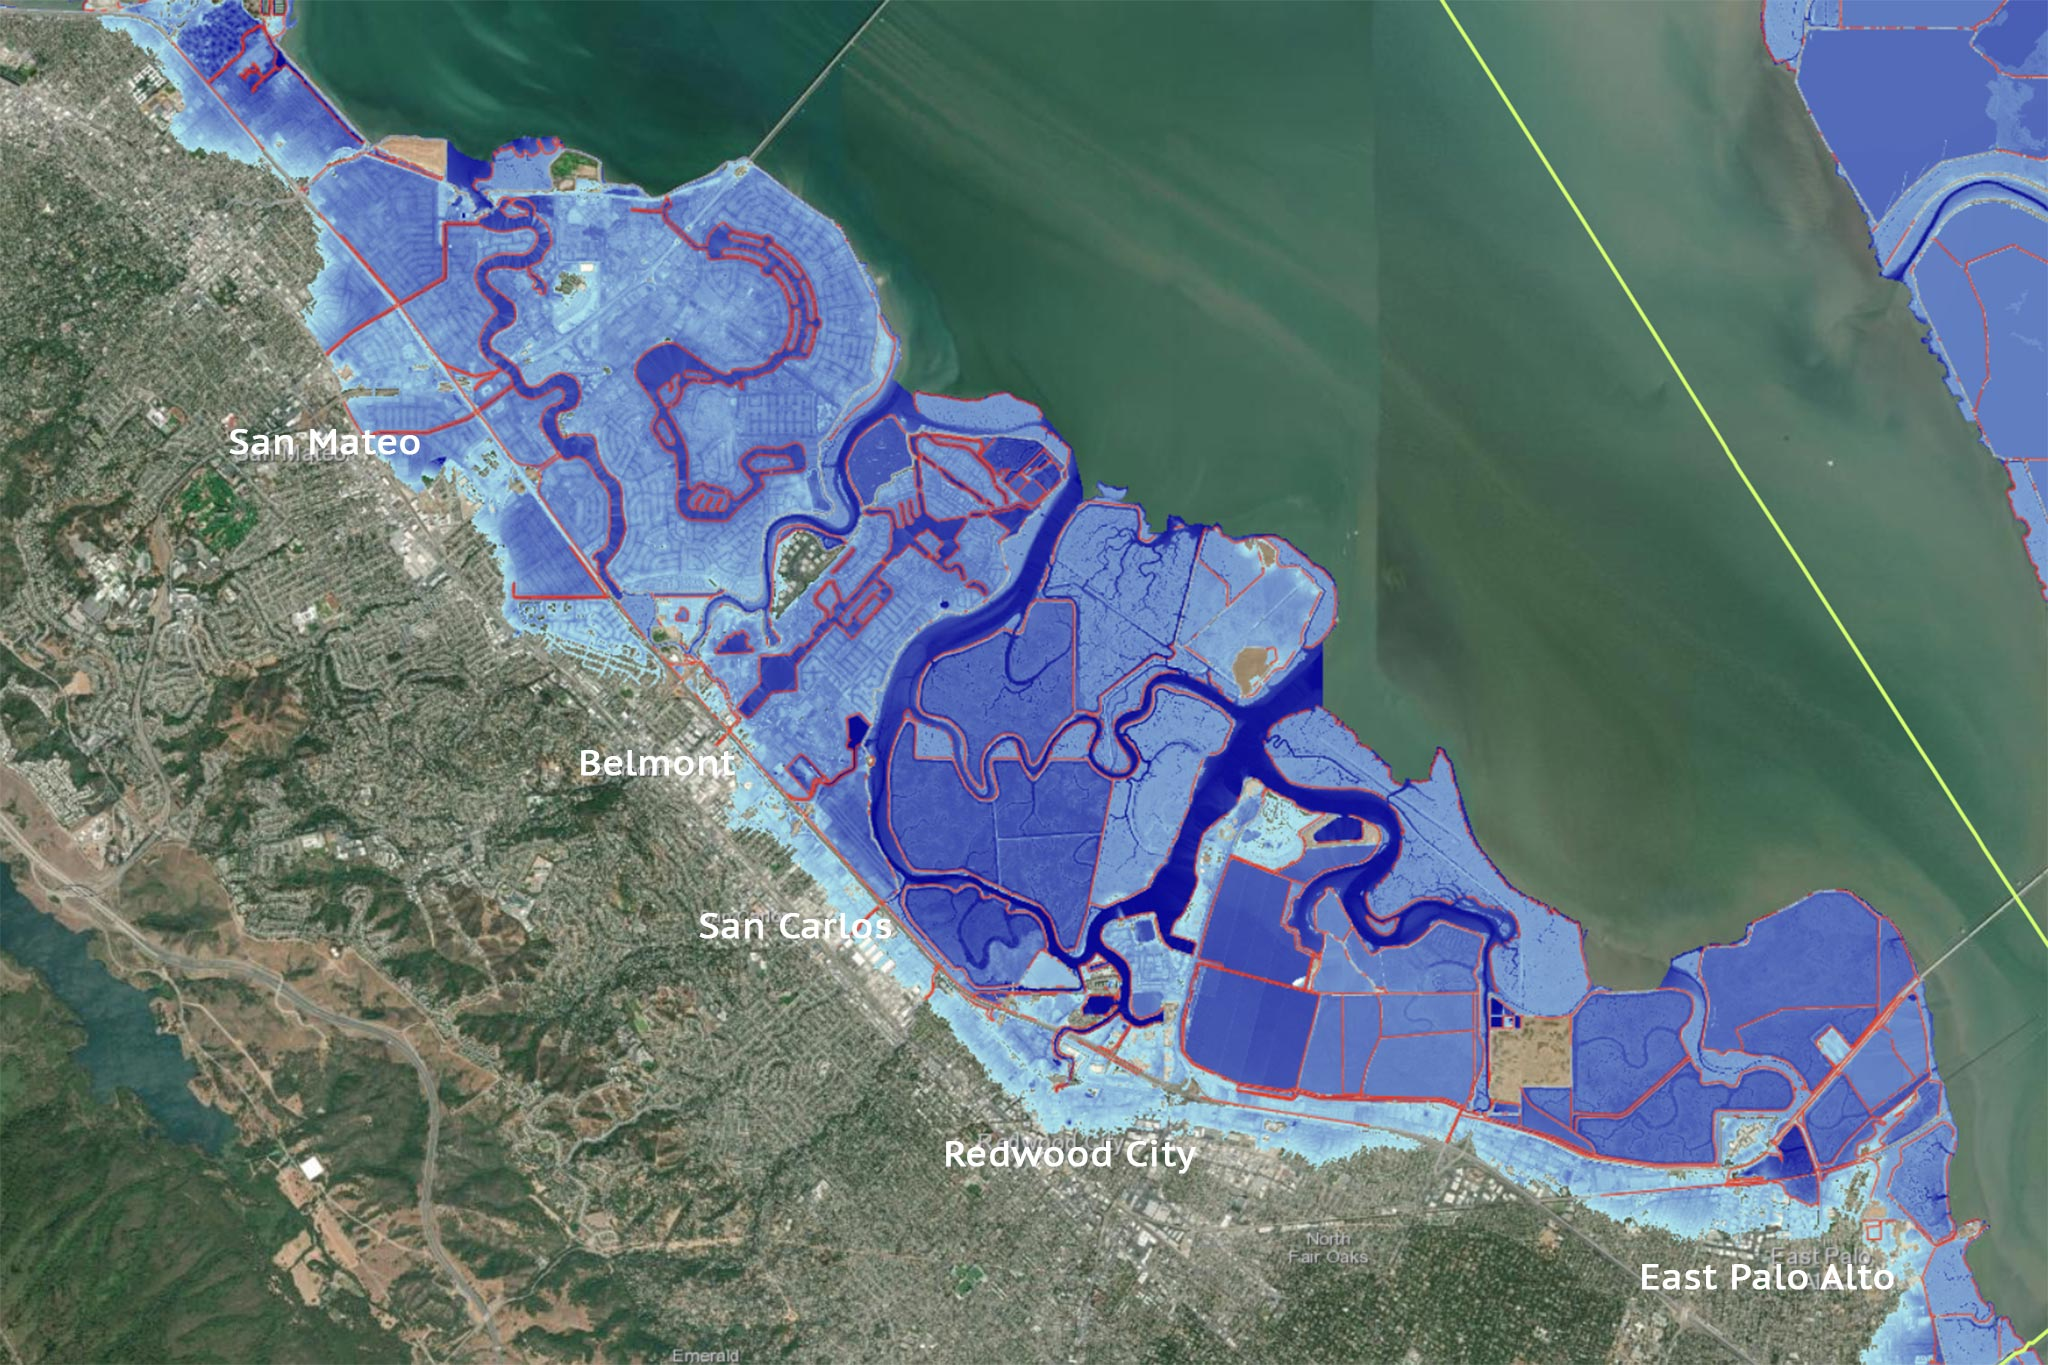 Map In New Study Shows Impact Of 4 Foot Sea Level Rise On San Francisco Bay Area Detailed satellite map of north bay , wisconsin showing roads, railway, airports, hotels, tourist attractions, educational institutions and other local areas. impact of 4 foot sea level rise